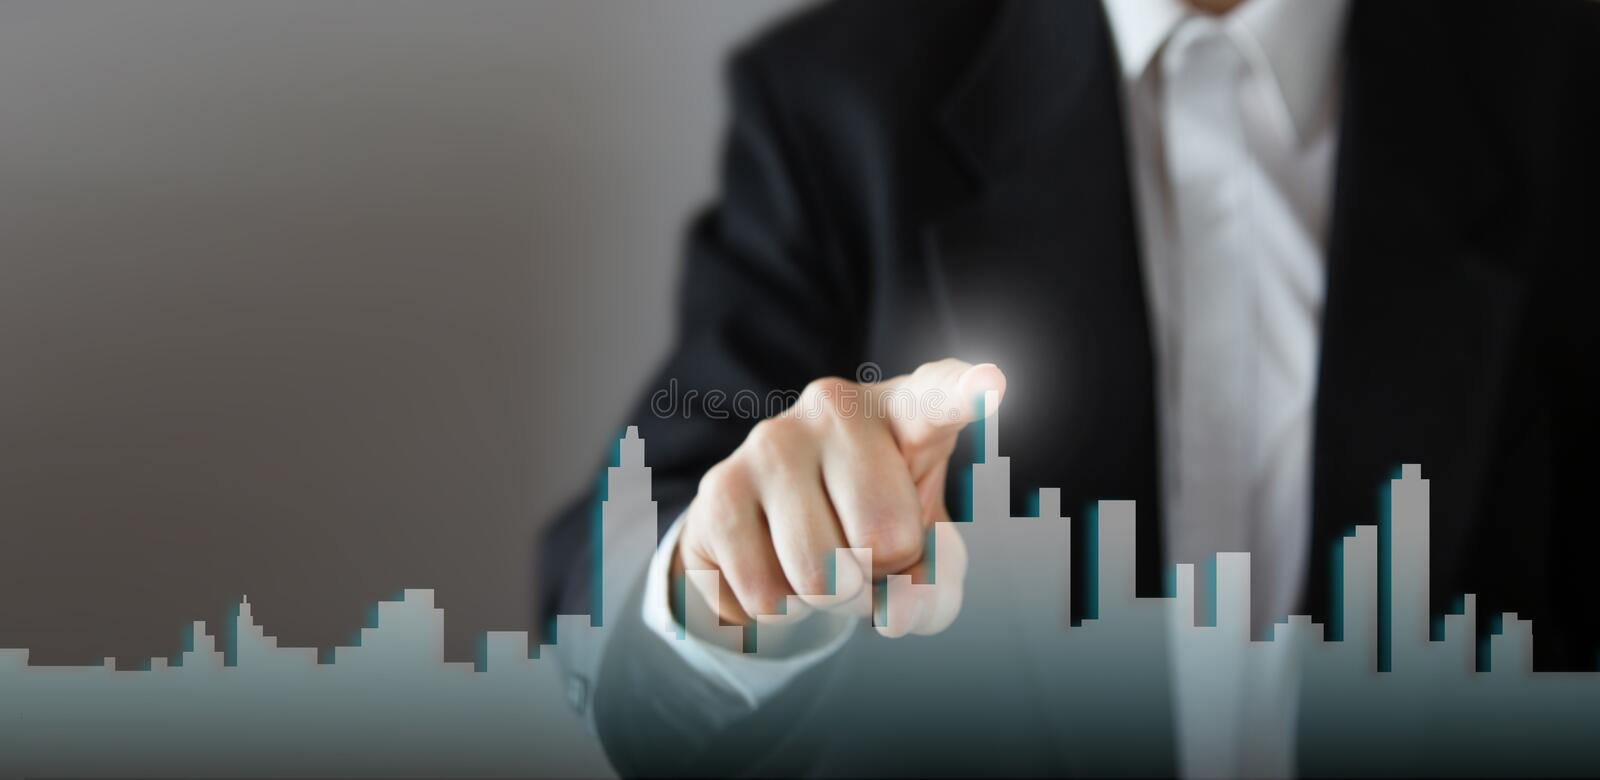 Businessman Activate Growth Process, choosing house, real estate city concept. Skyline Hand pressing the house icon on. Virtual screen. Business, technology royalty free stock photography